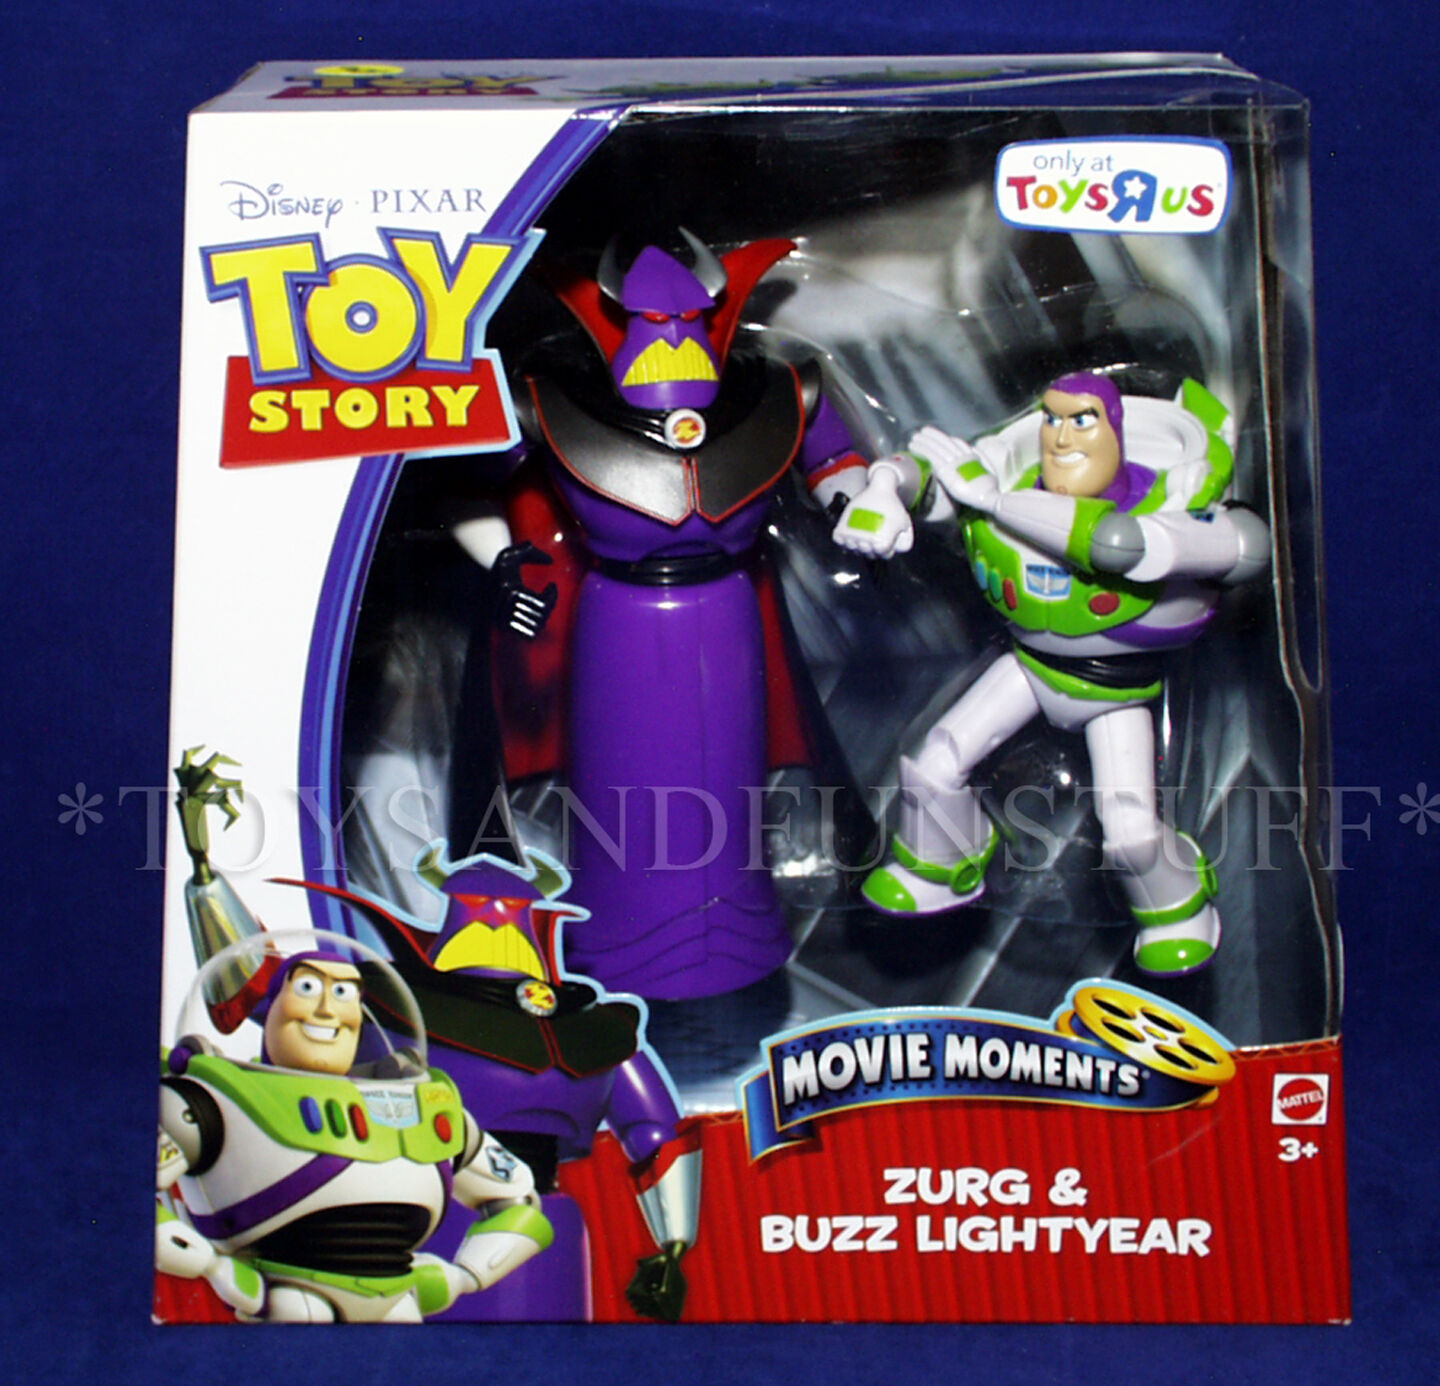 New ZURG & BUZZ LIGHTYEAR Toy Story 3 Posable 6